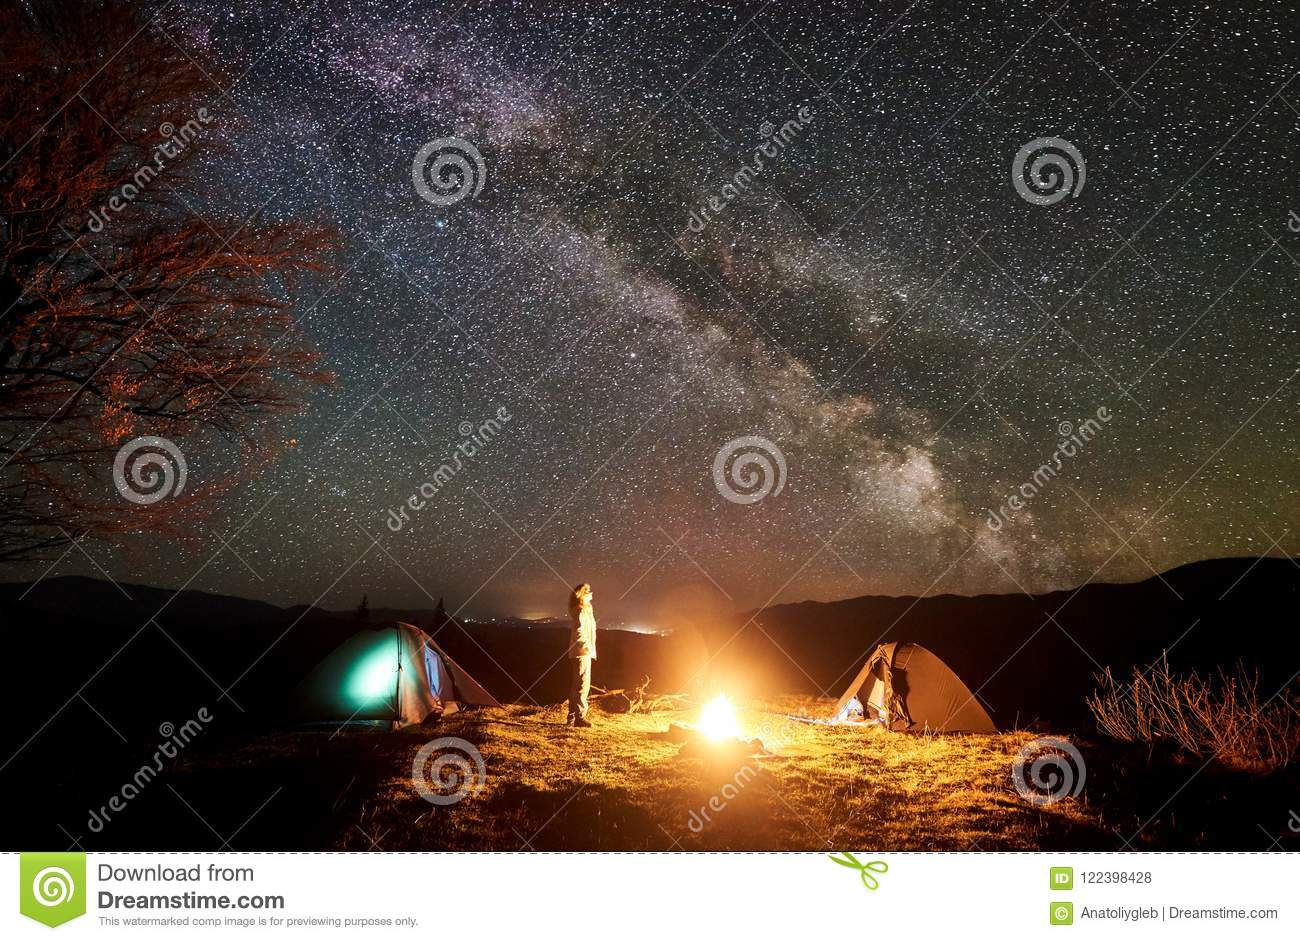 Night camping in mountains. Female hiker resting near campfire, tourist tent under starry sky